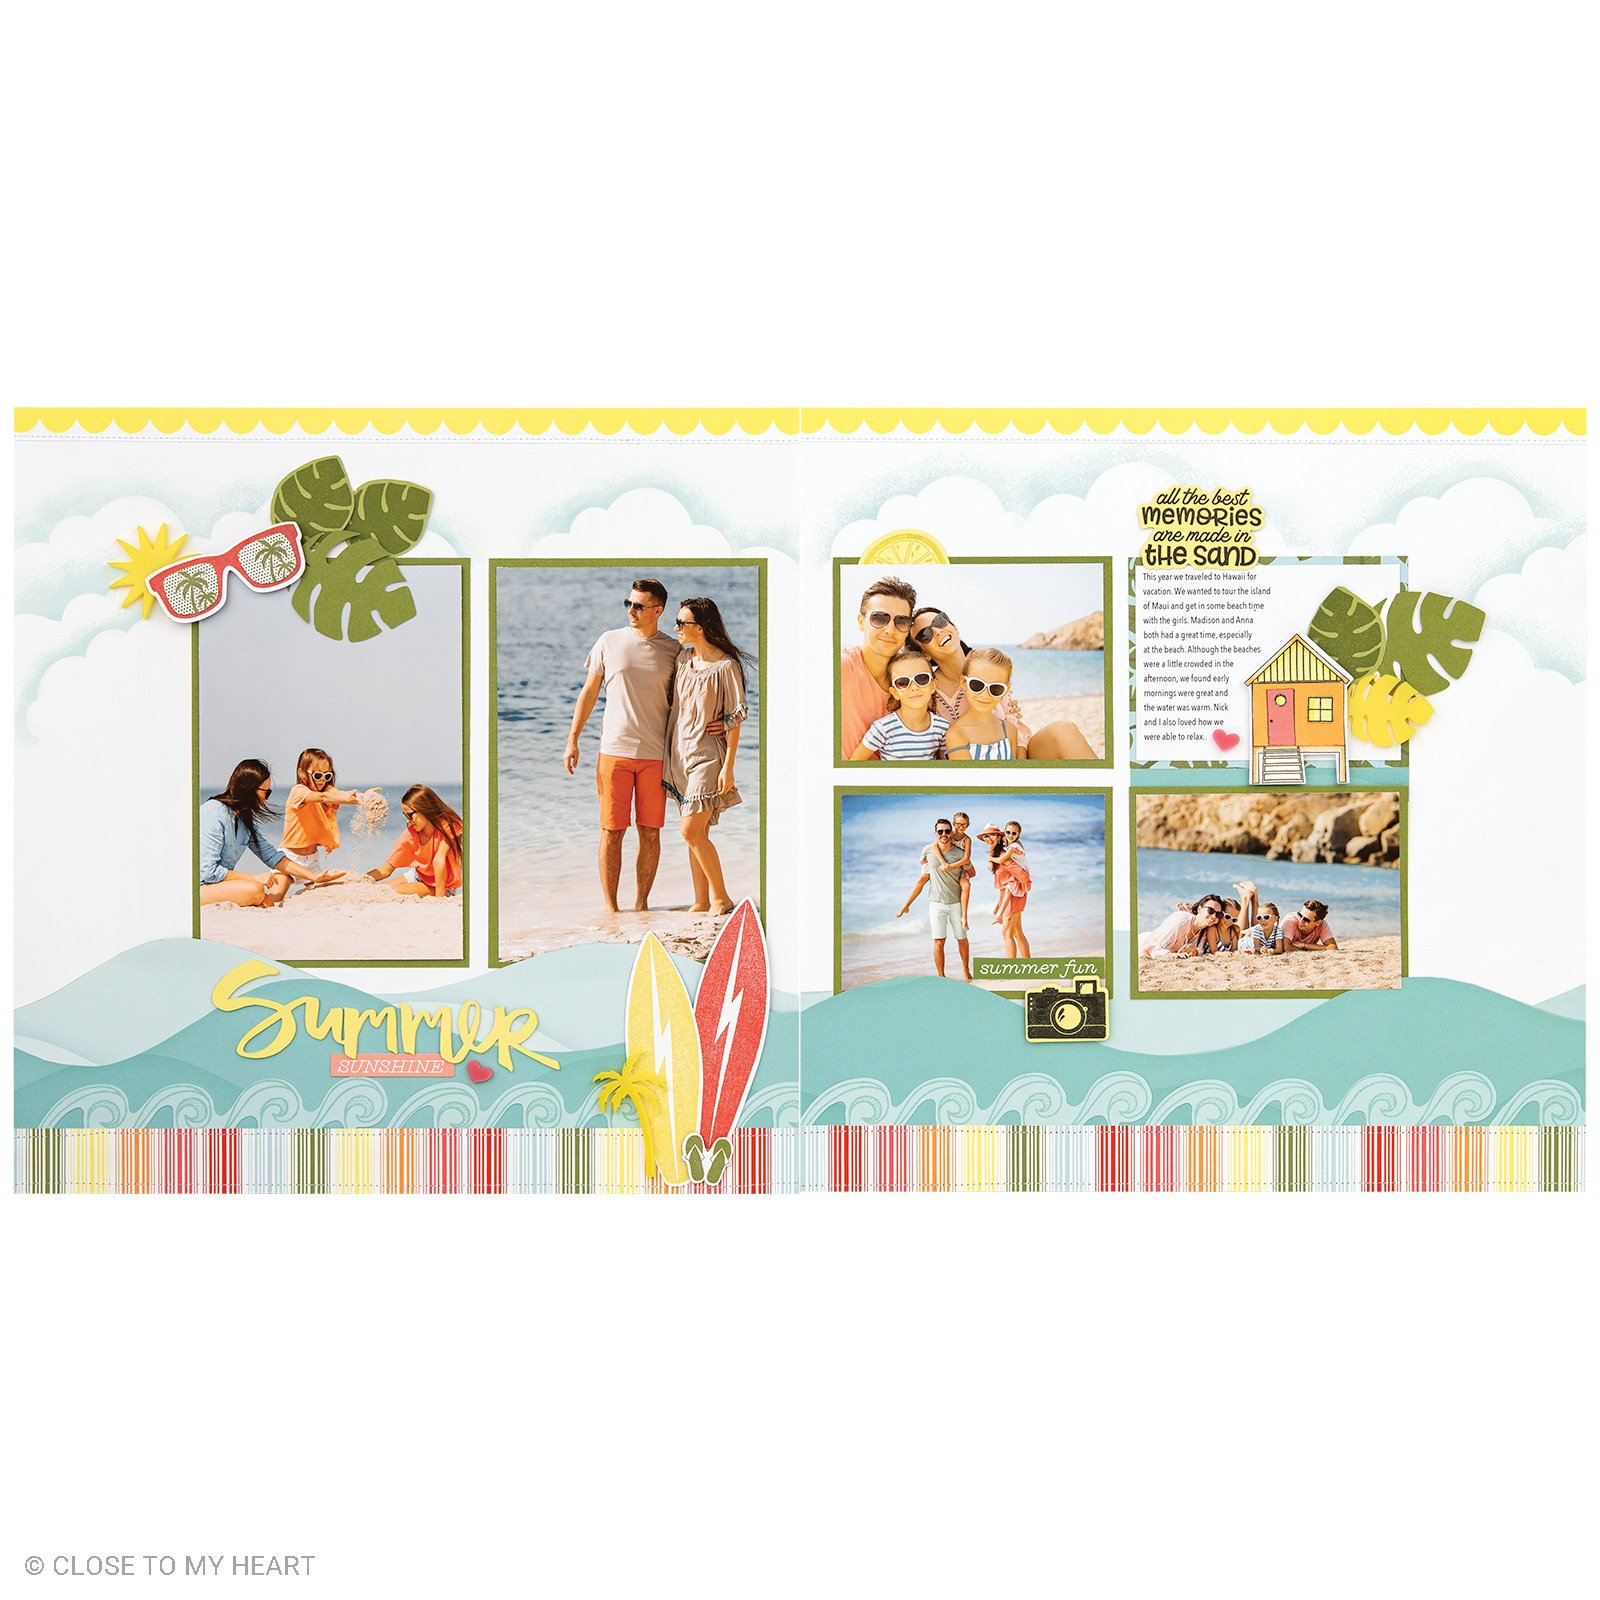 July Top Pick for Kit of the Month: Summer Vibes